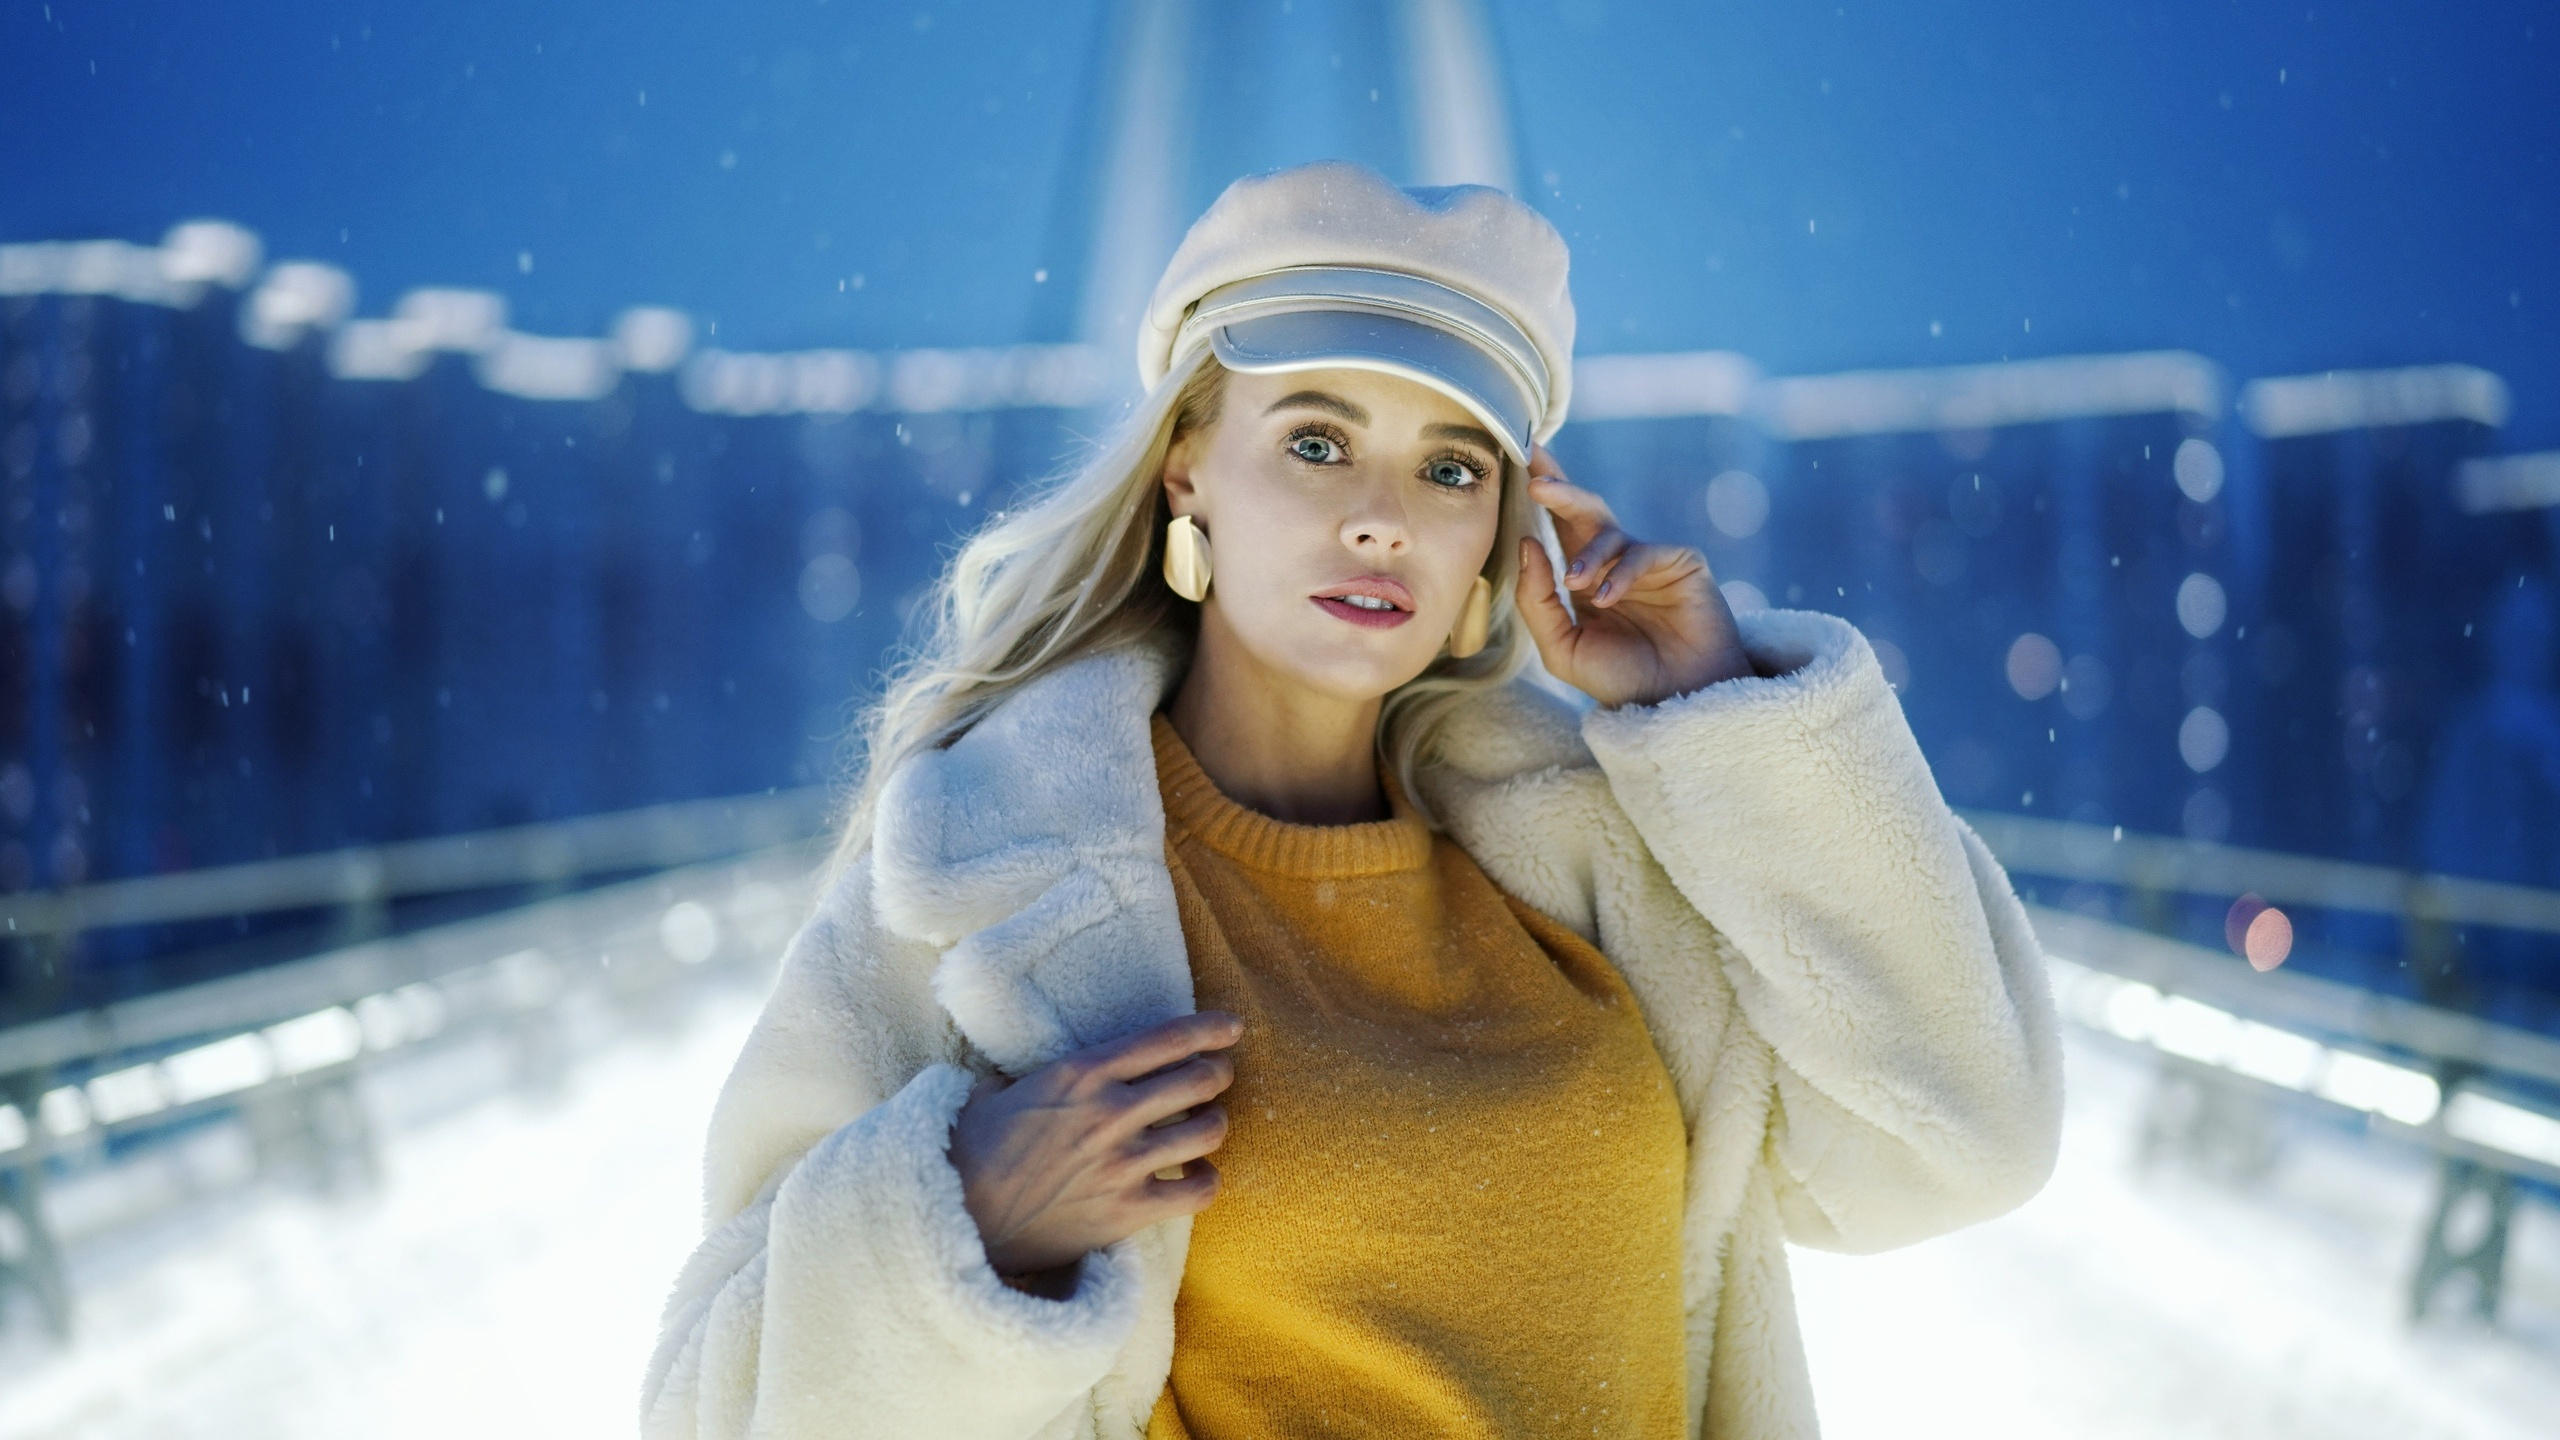 2560x1440 Girl In Snow Winter Outdoors 1440p Resolution Hd 4k Wallpapers Images Backgrounds Photos And Pictures